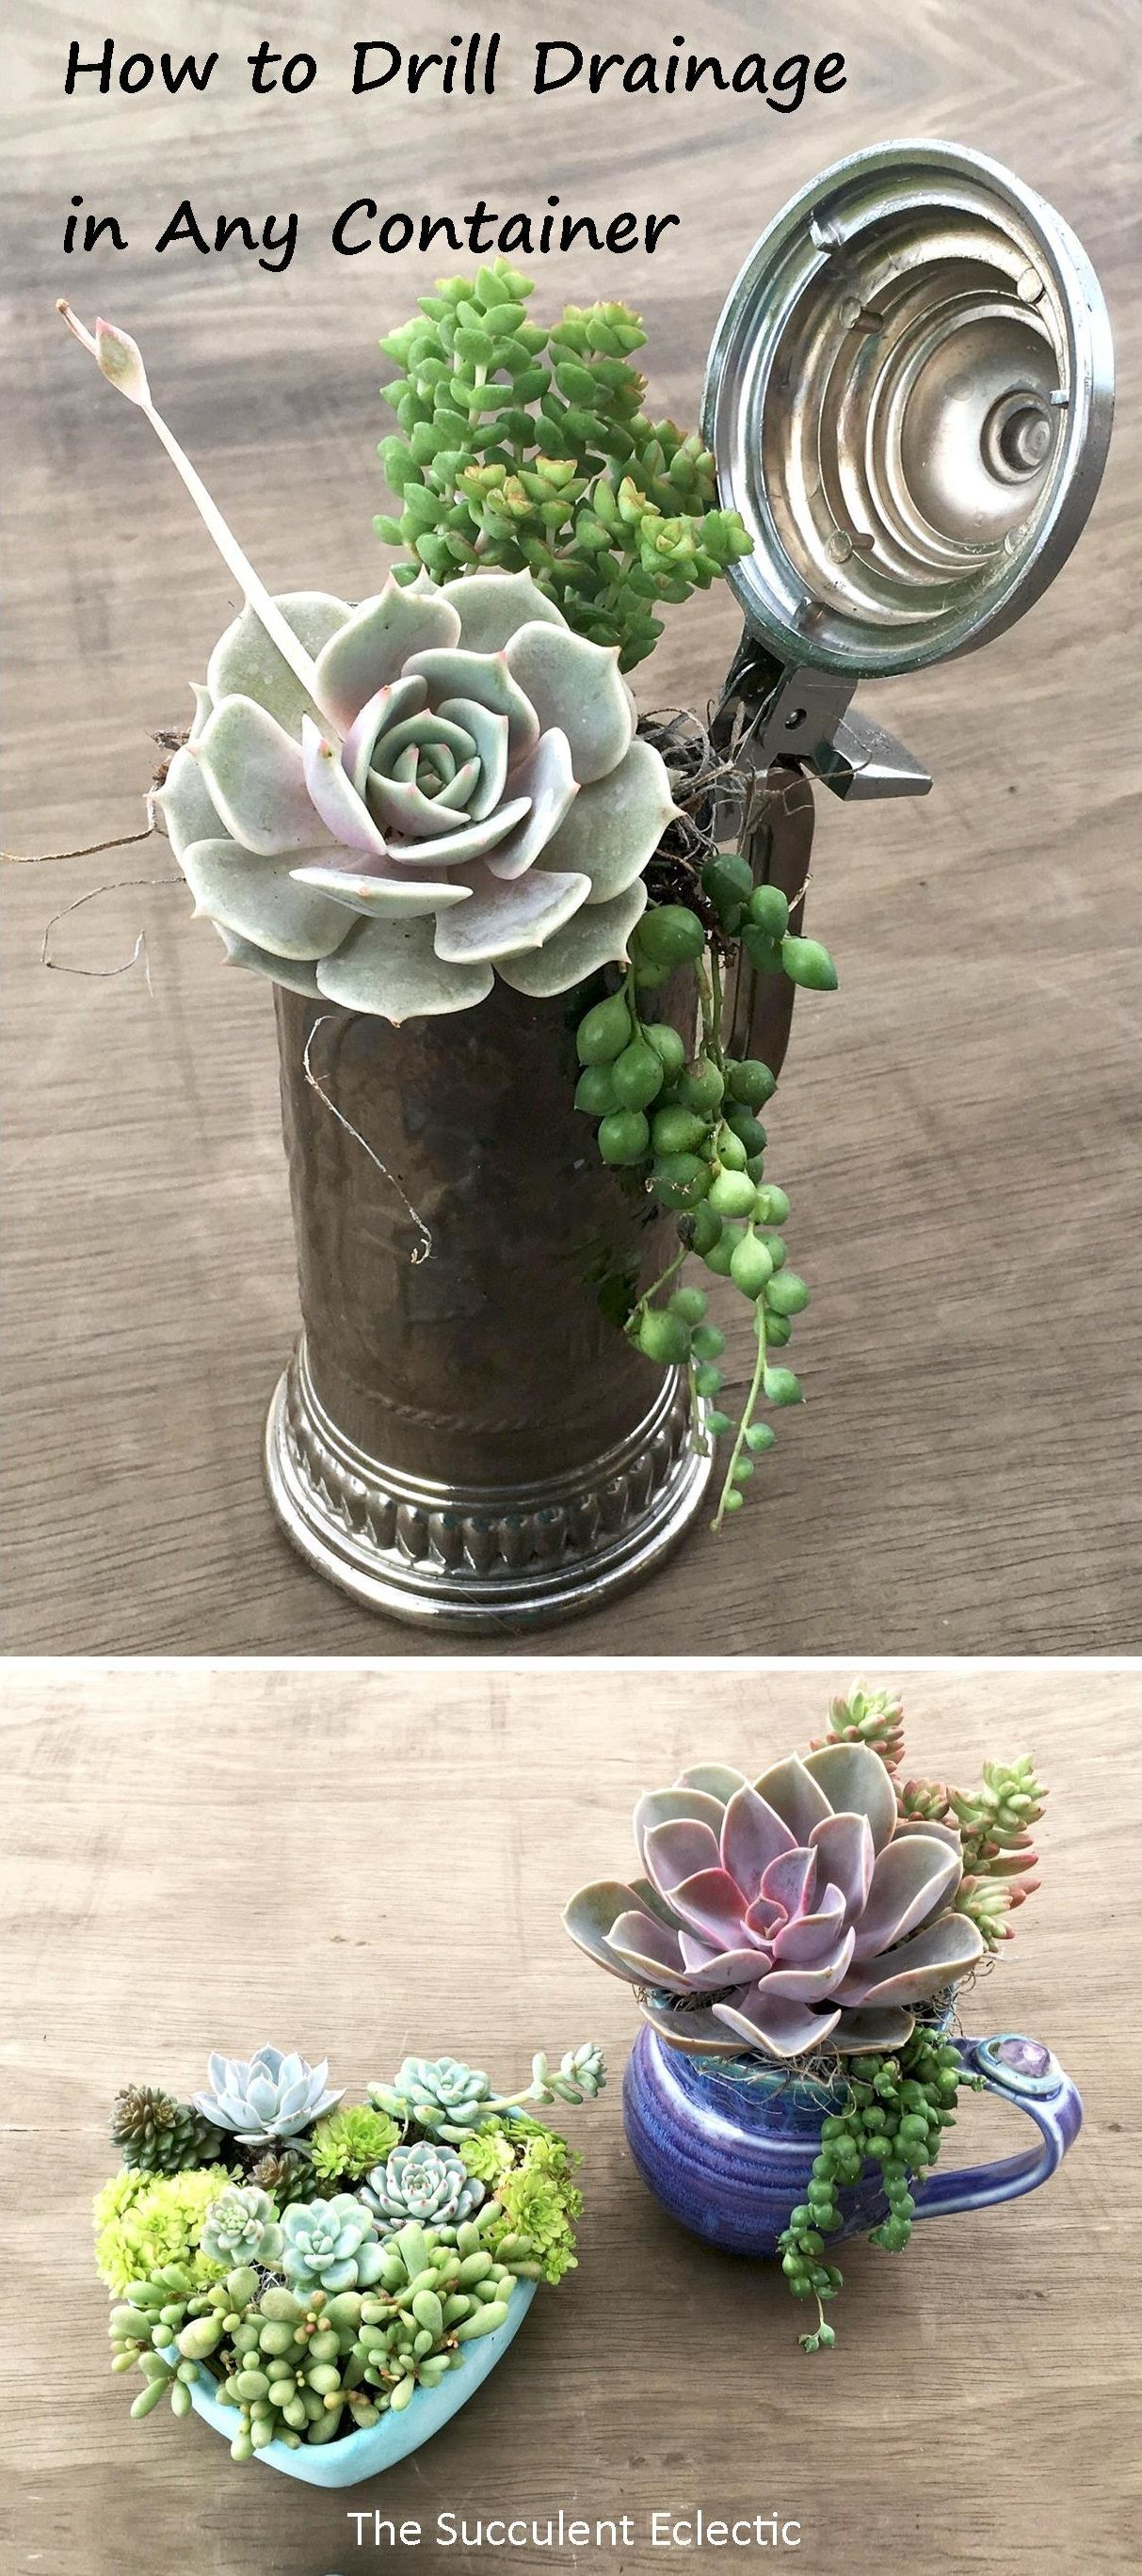 Planting Succulents In Containers Without Drainage Drill Your Own The Succulent Eclectic Succulents In Containers Succulent Planter Diy Planting Succulents